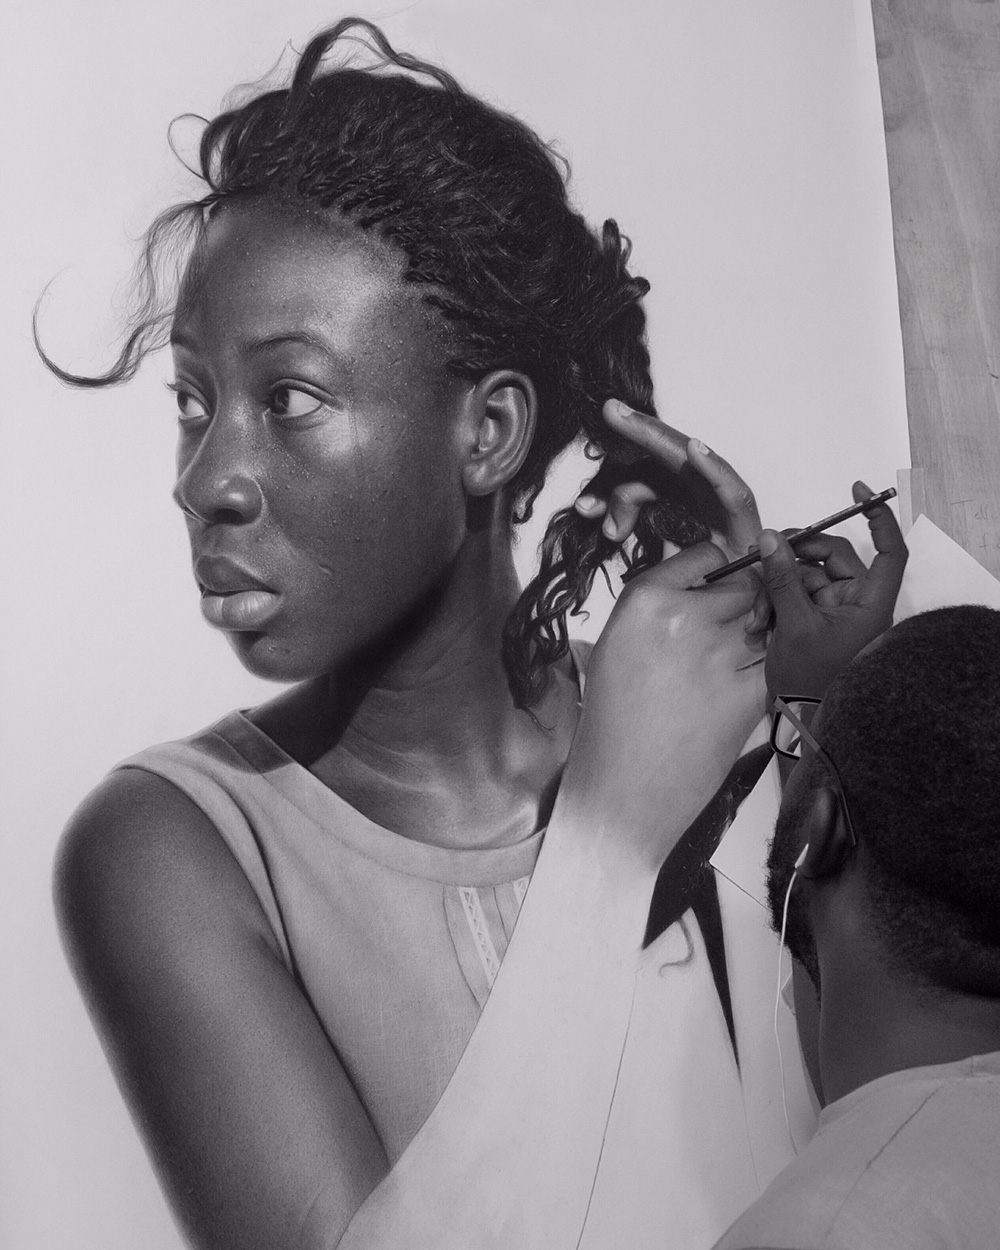 Hyperrealistic Pencil Drawings by Arinze Stanley